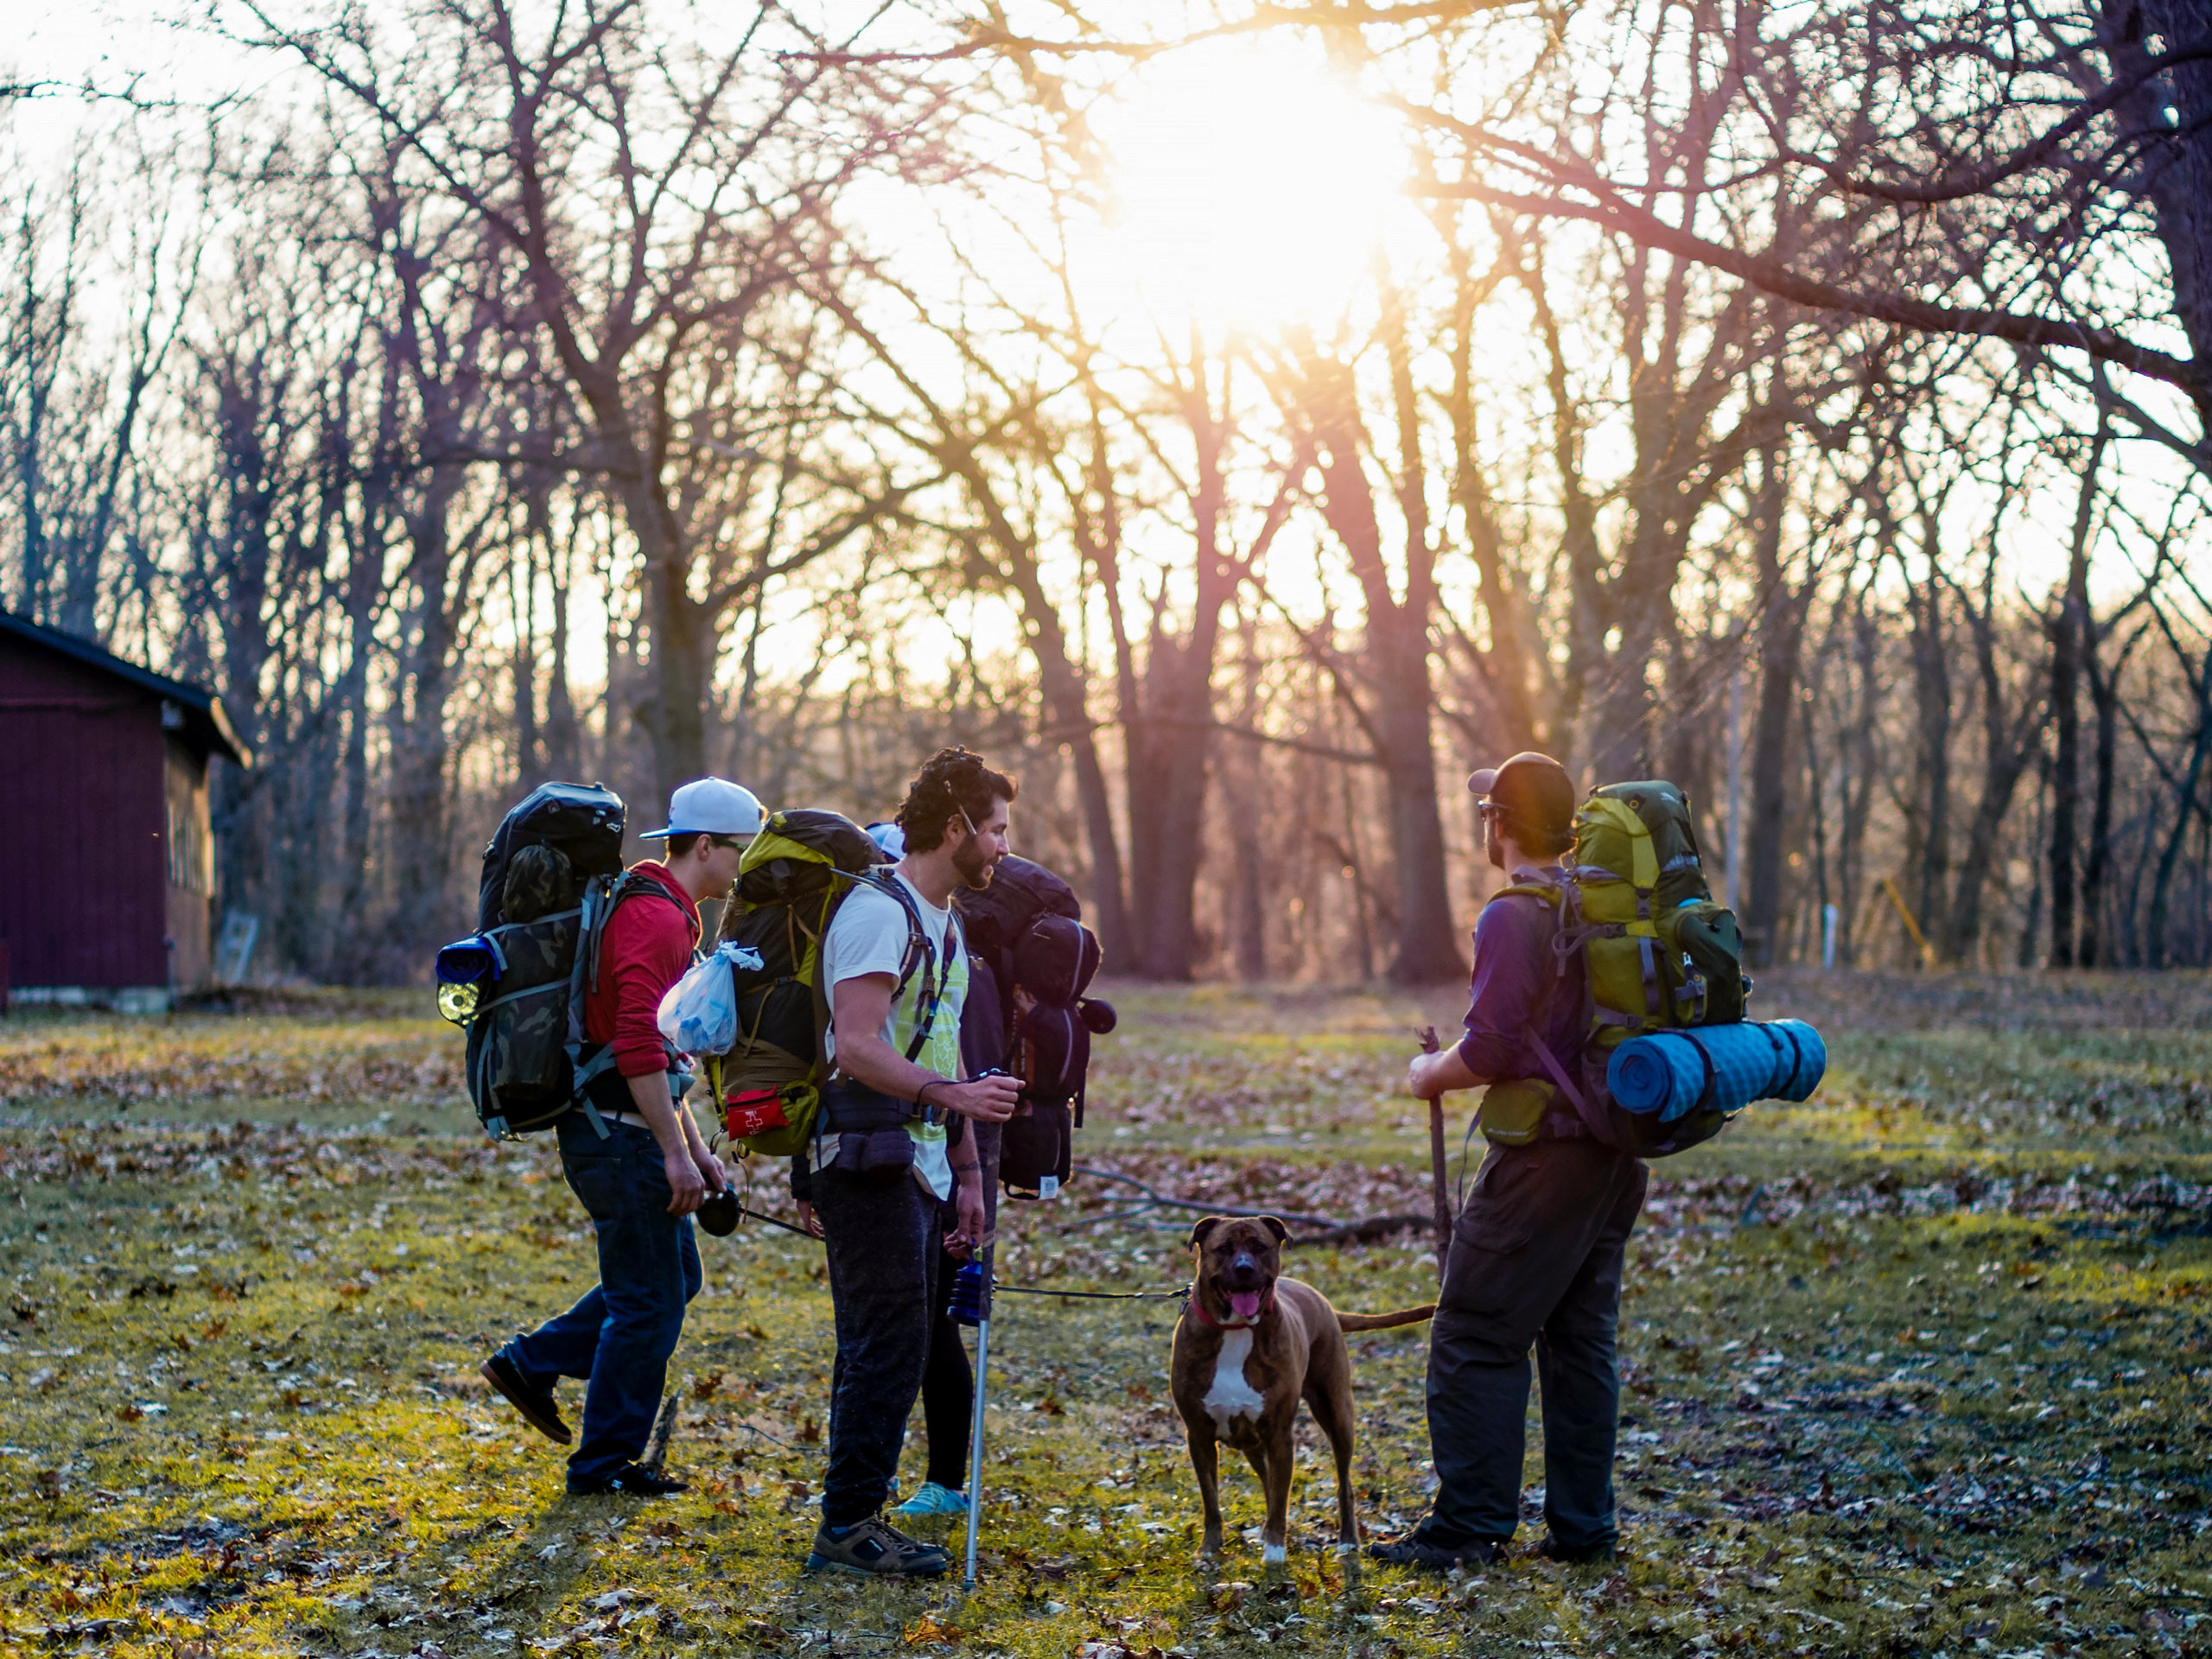 Friends with backpacks camping gear hiking with dogs